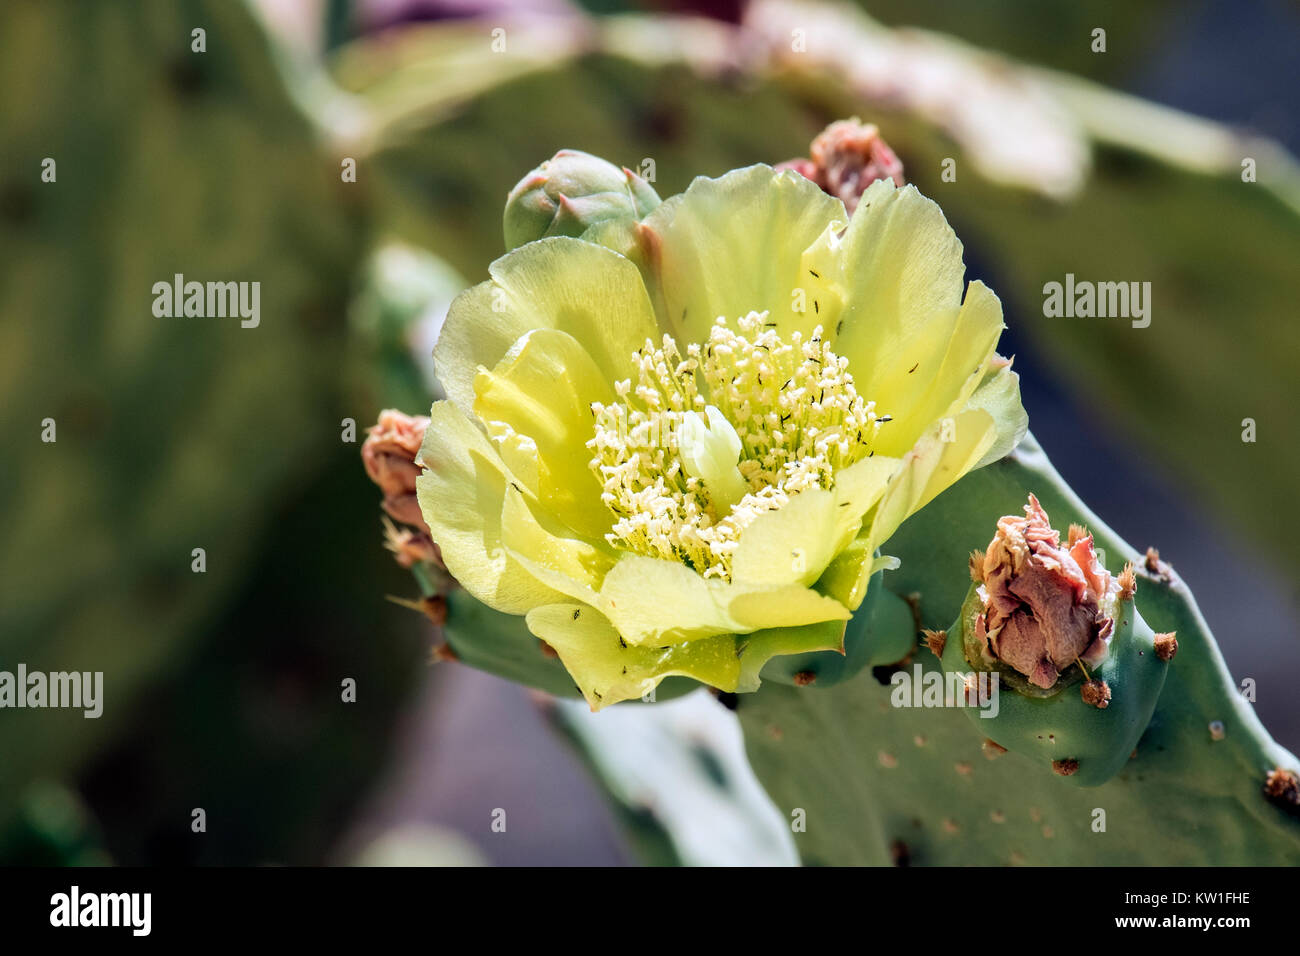 Bright yellow flower of a large cactus (Opuntia robusta) - Stock Image